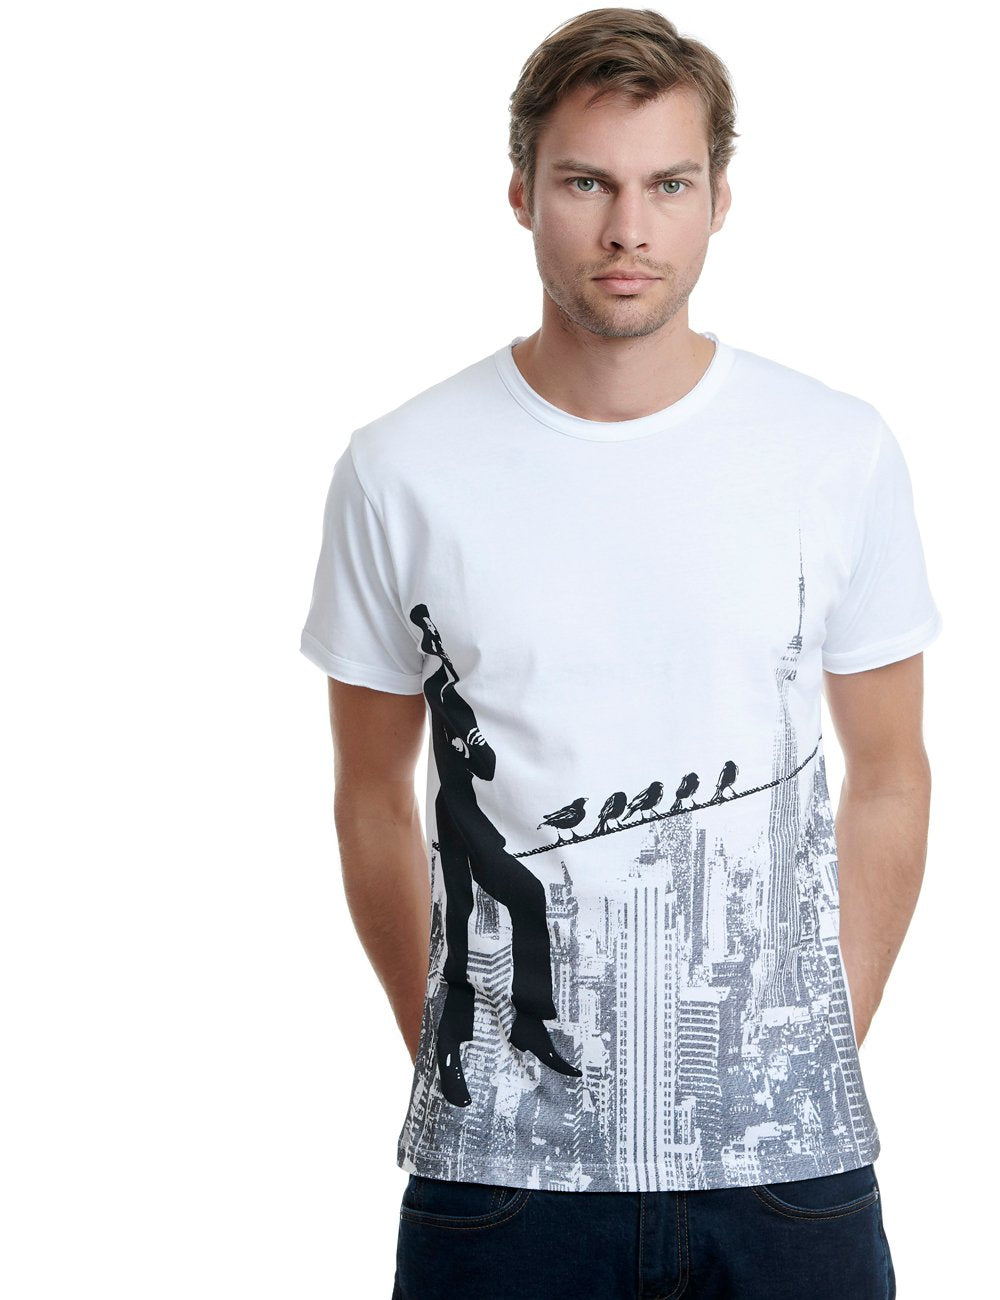 Skyline Replica tshirt Greece white